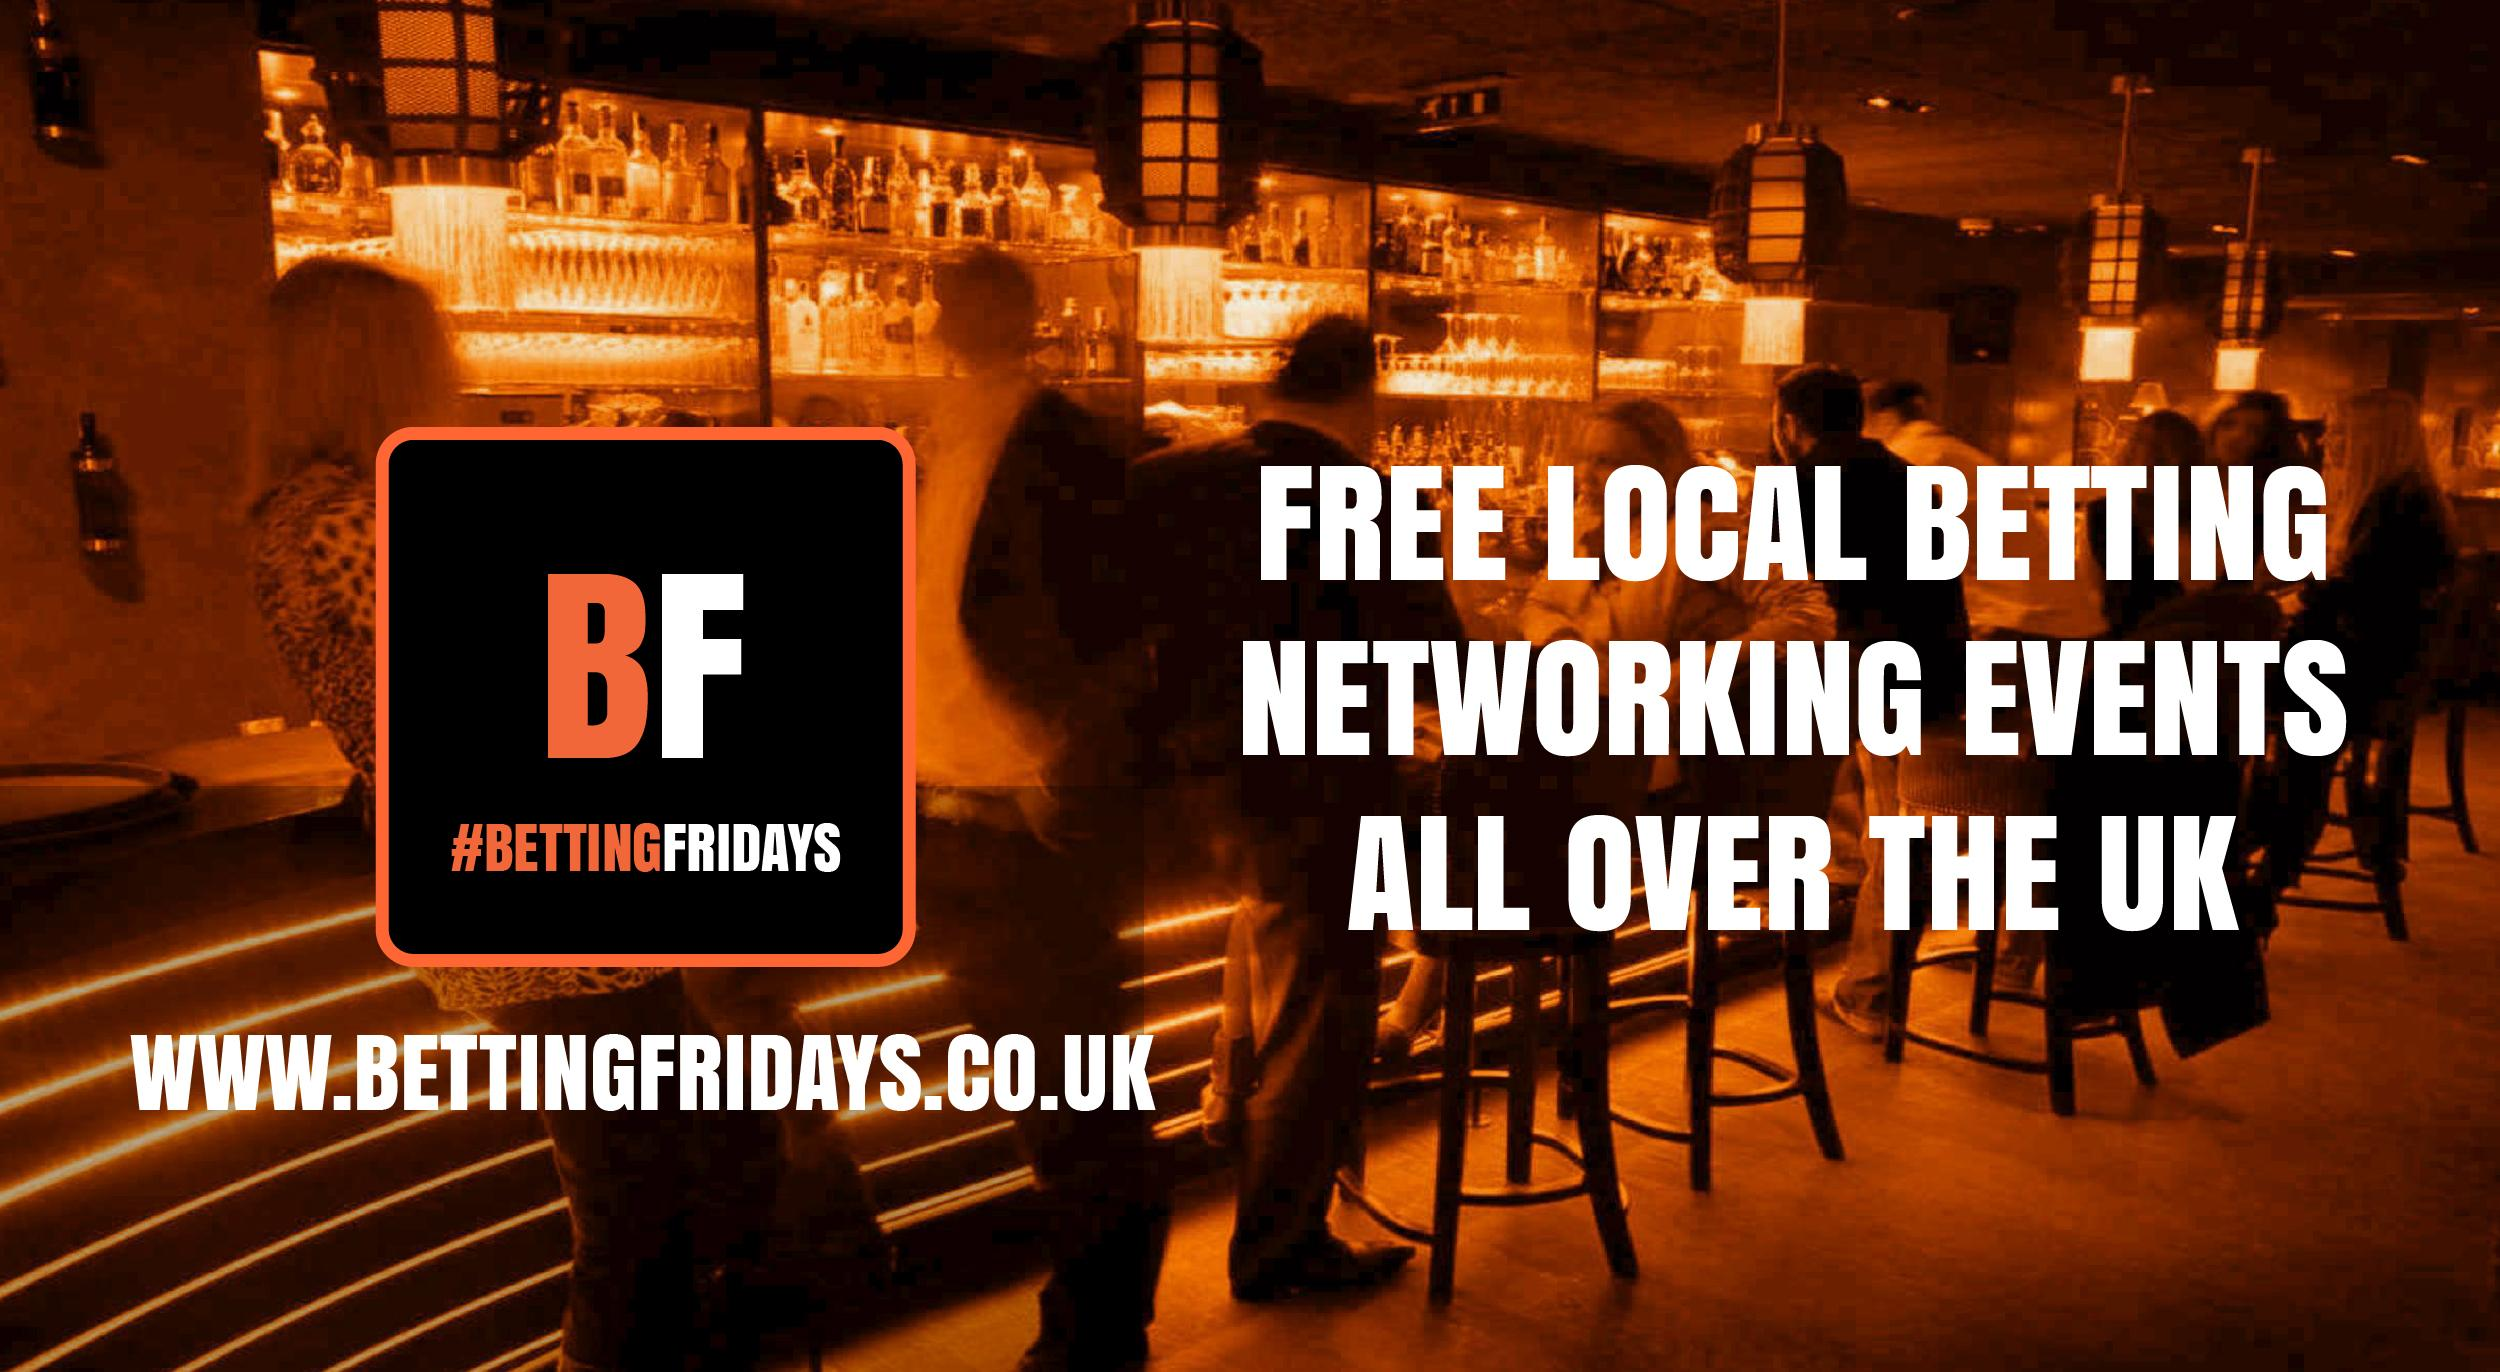 Betting Fridays! Free betting networking event in Willenhall